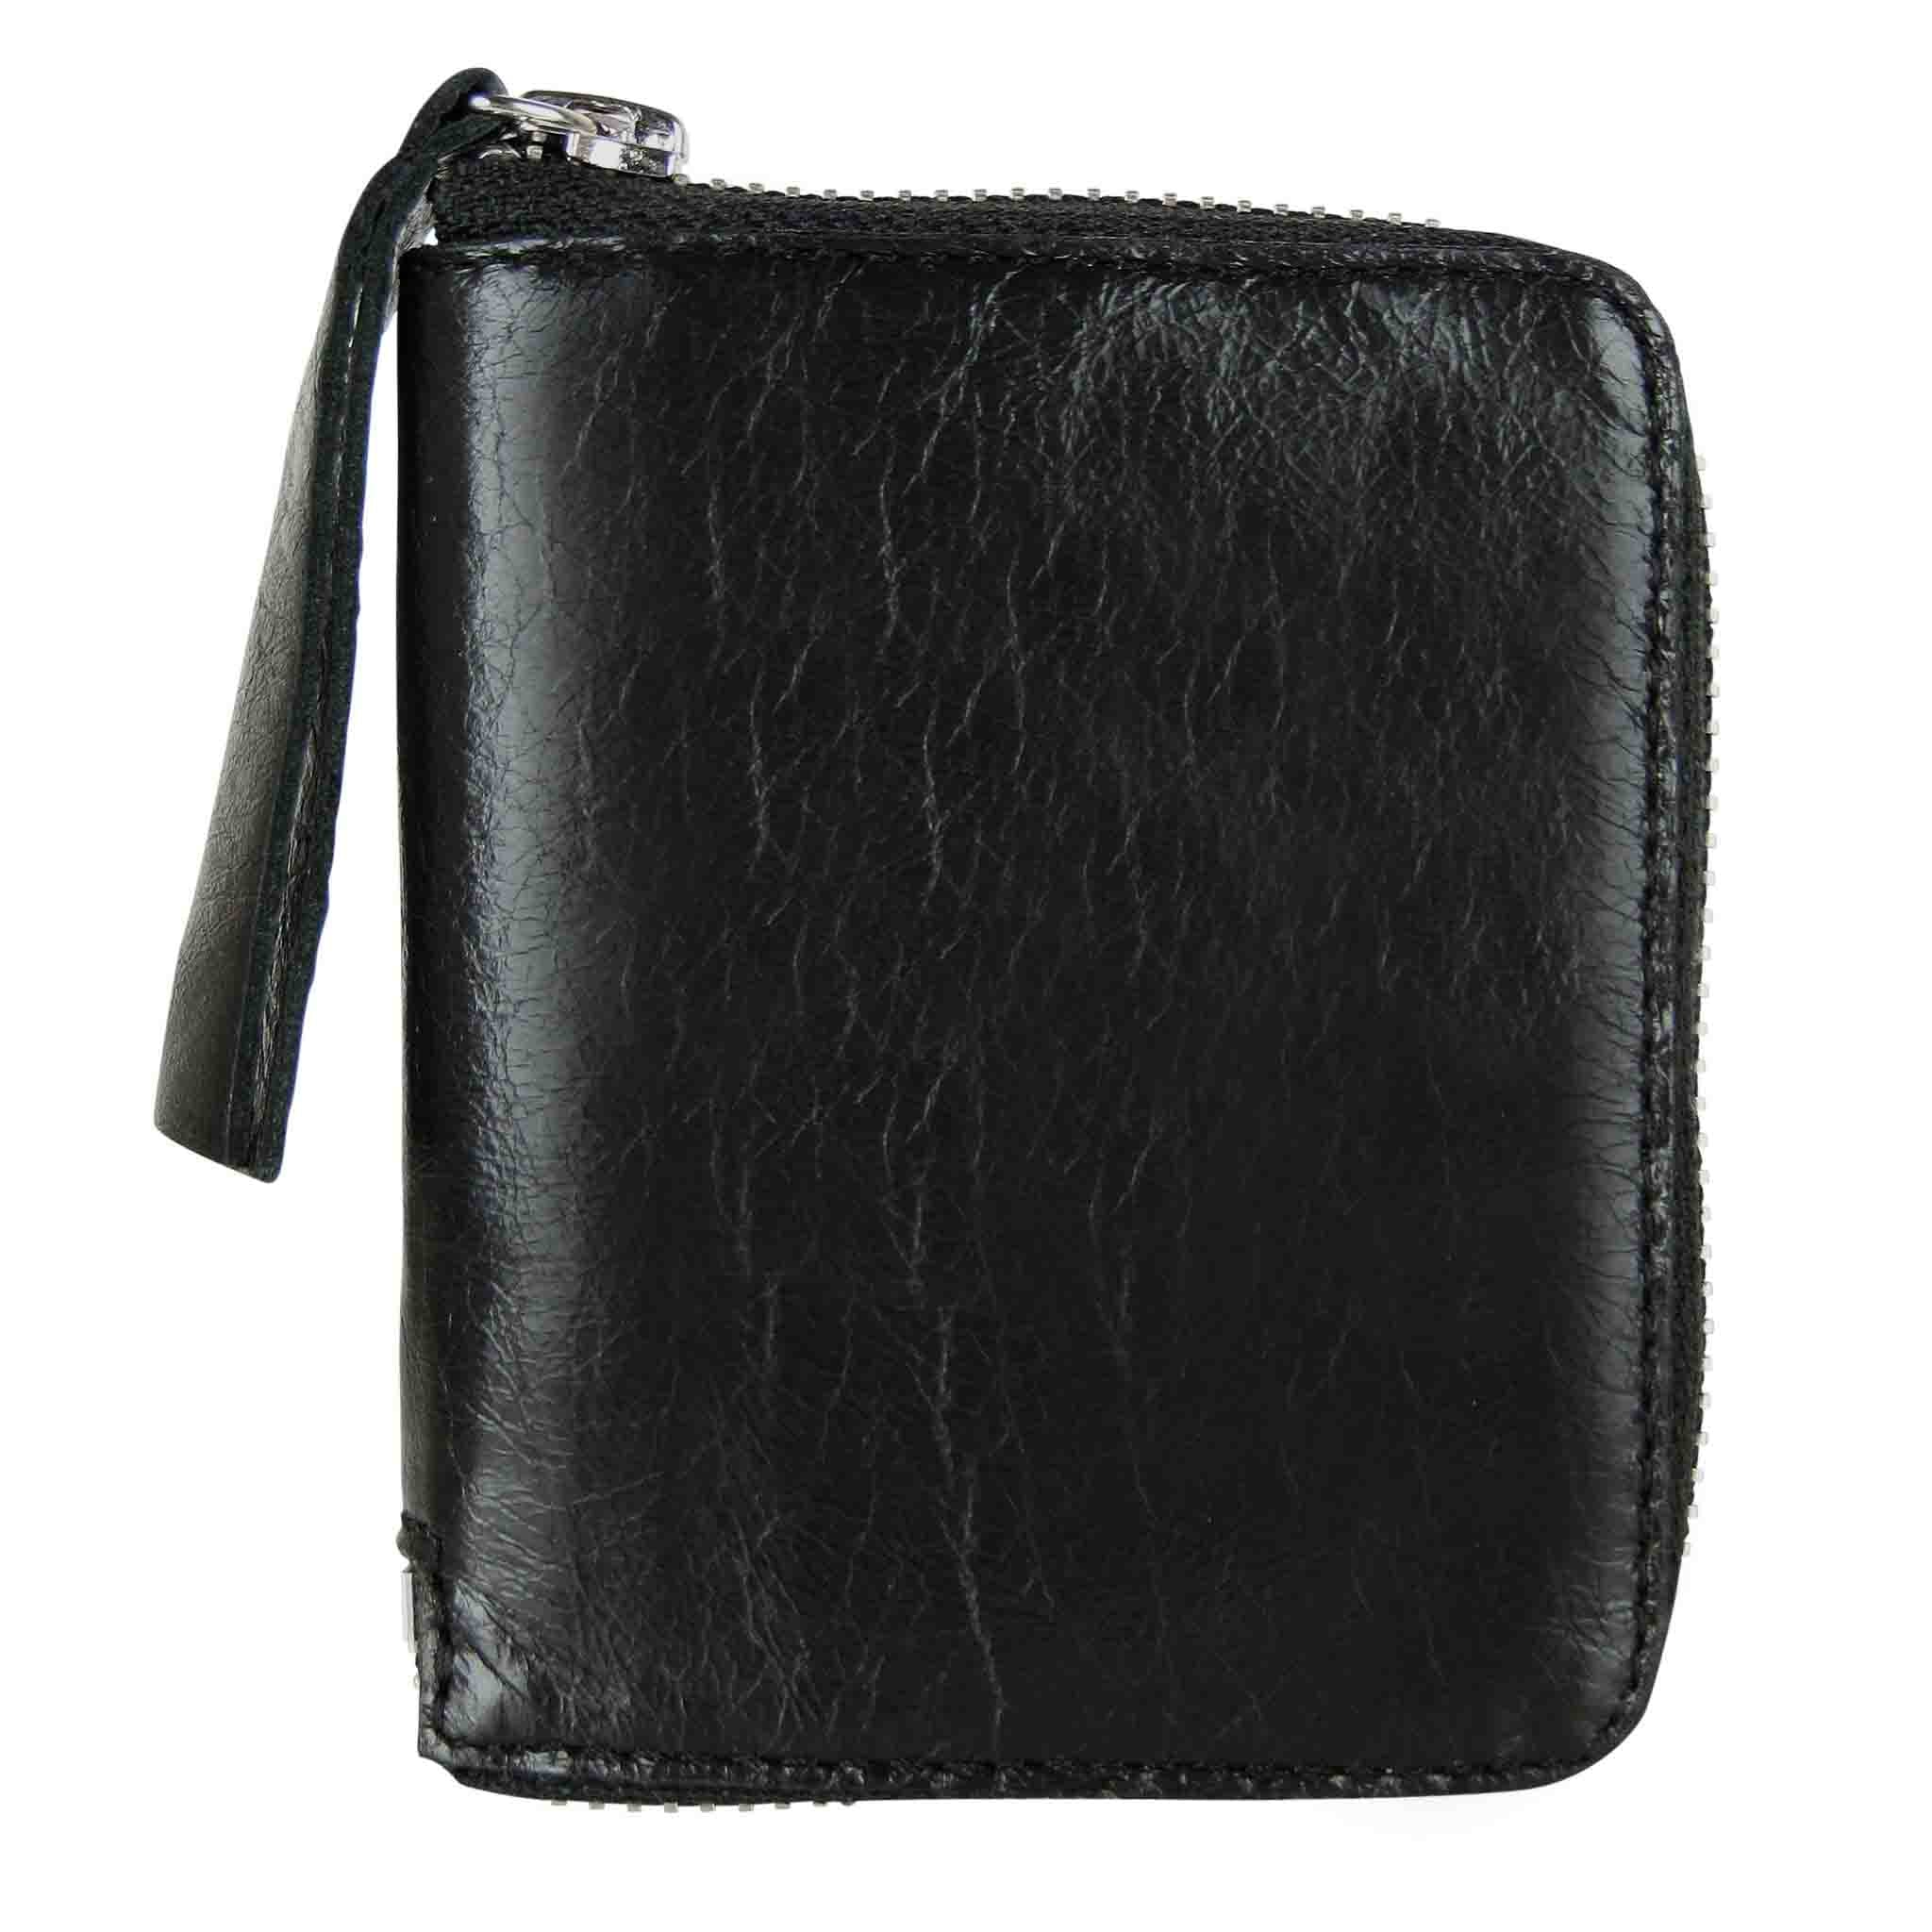 BLACK LEATHER WALLET MEN'S TASCHE